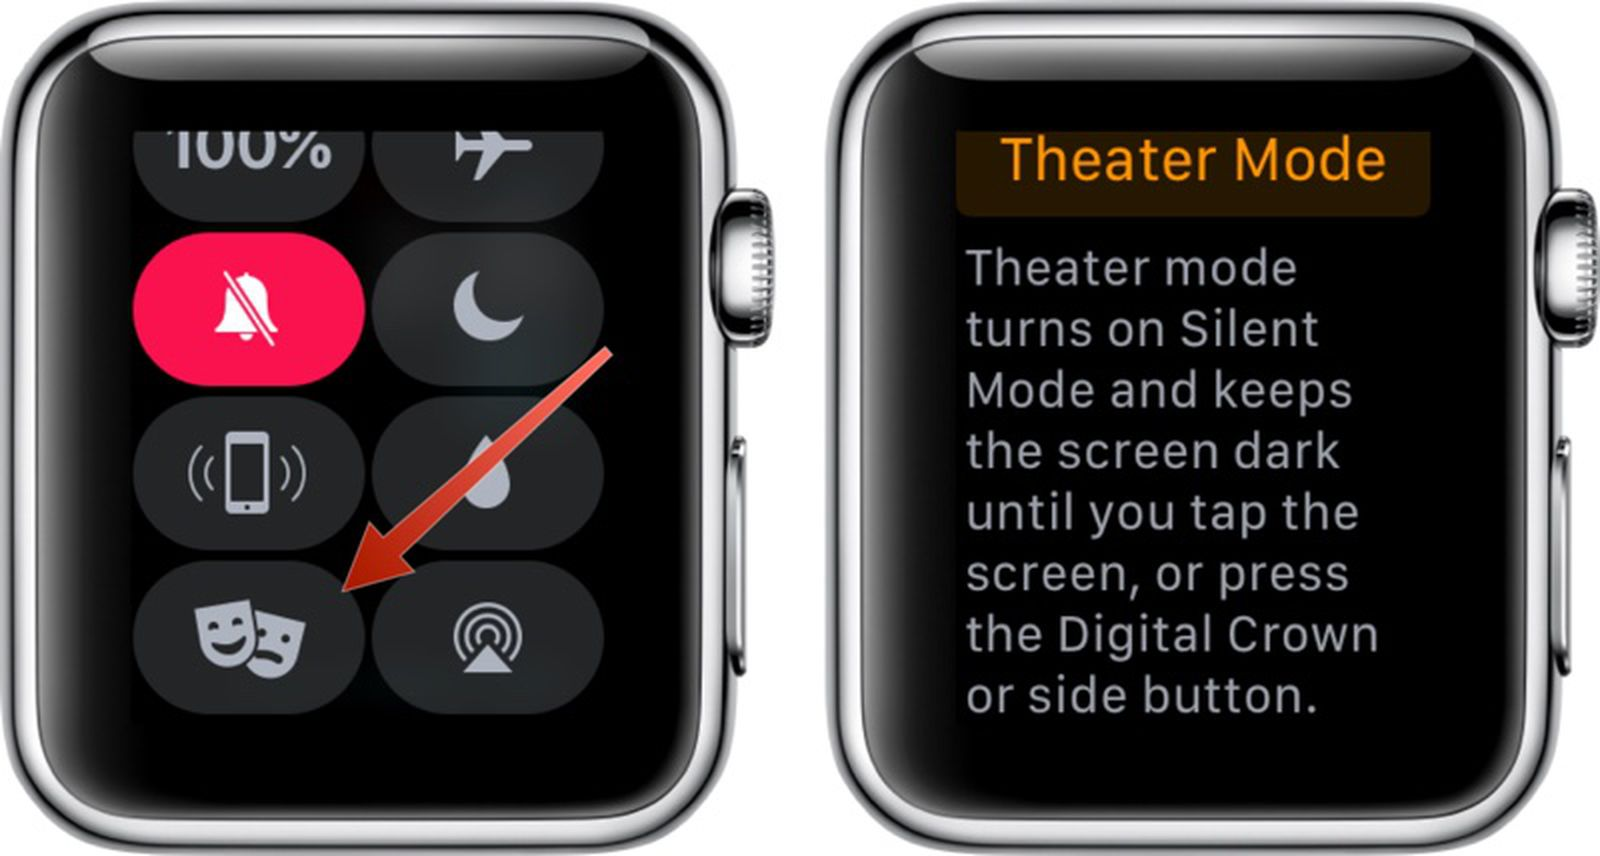 Apple watch theater mode